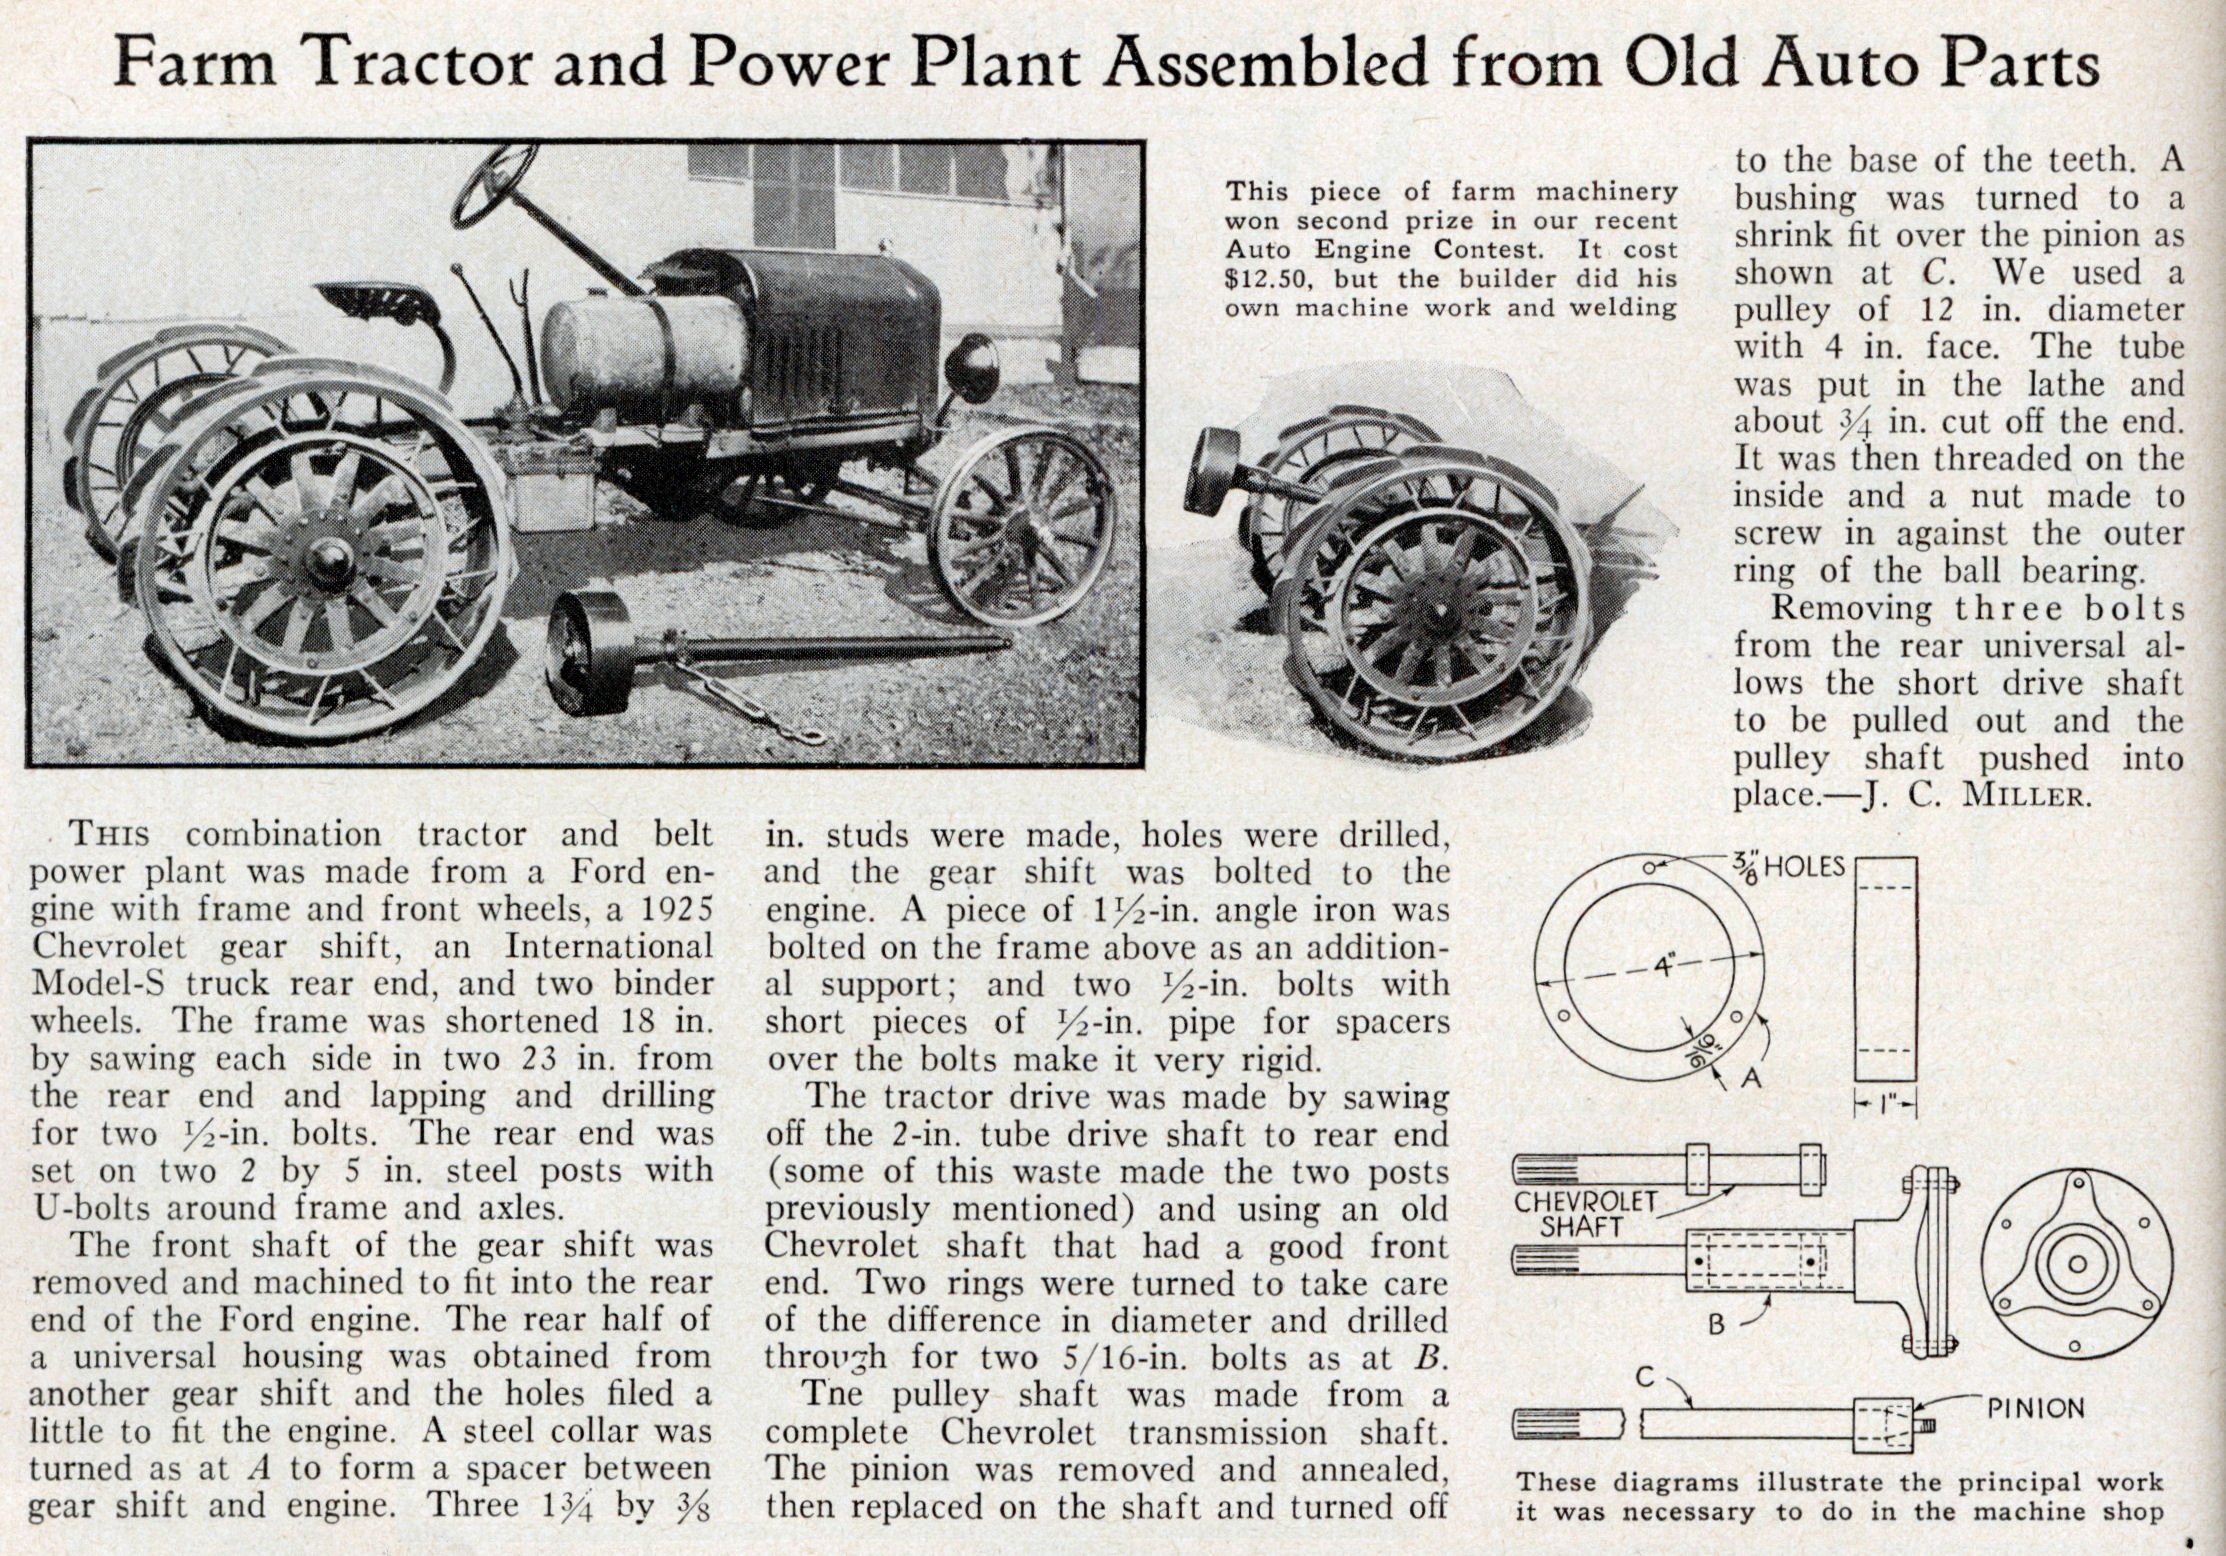 farm tractor diagram farm image wiring diagram farm tractor and power plant assembled from old auto parts on farm tractor diagram